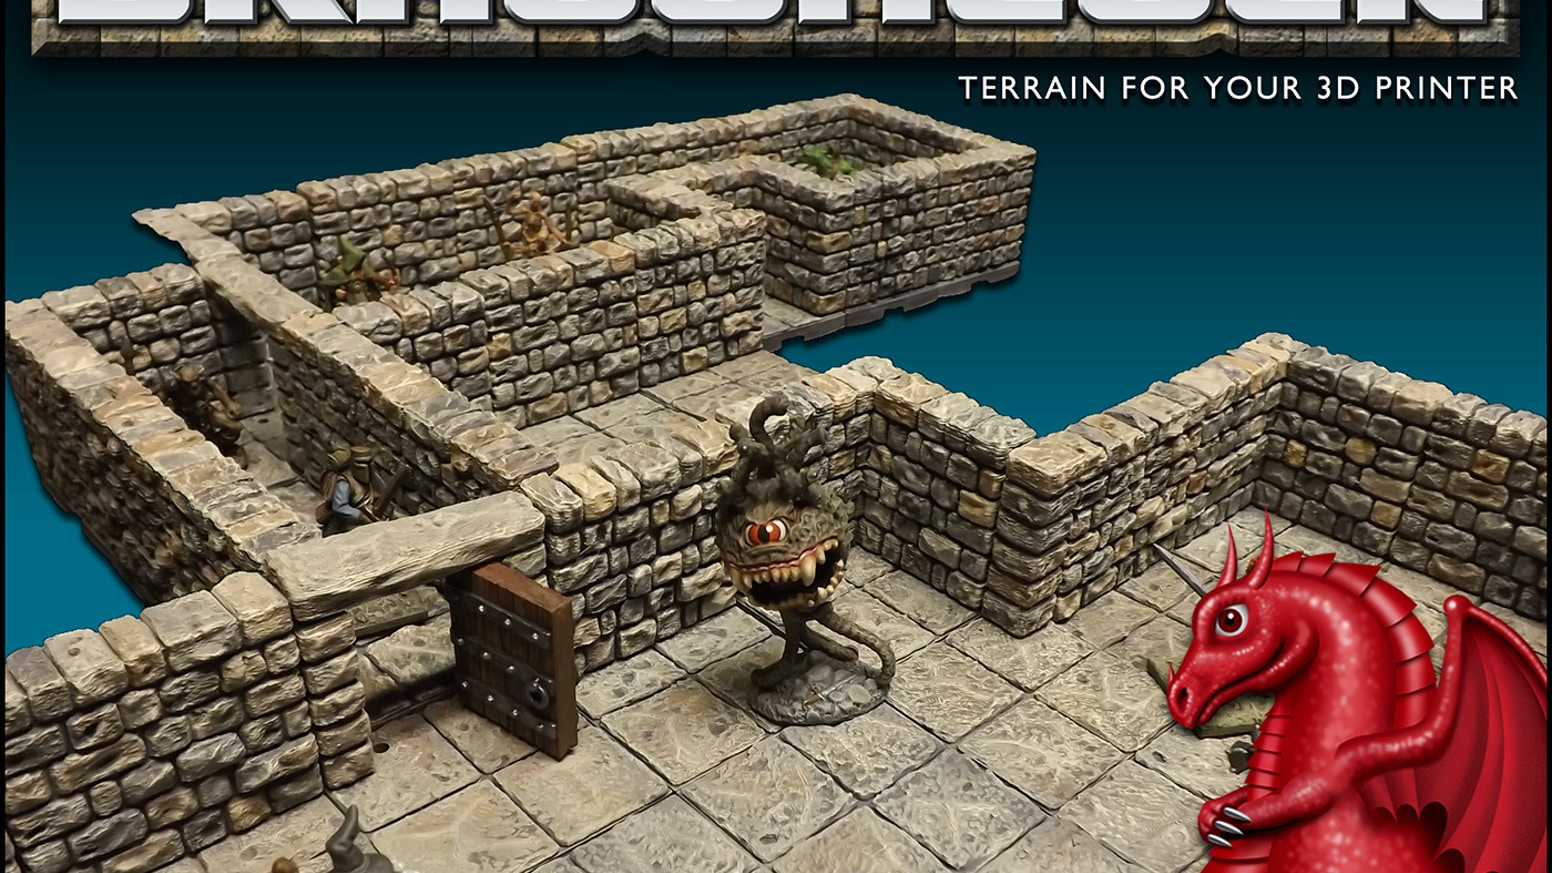 the dragonlock terrain system features dungeon pieces that snap together and can be stacked to